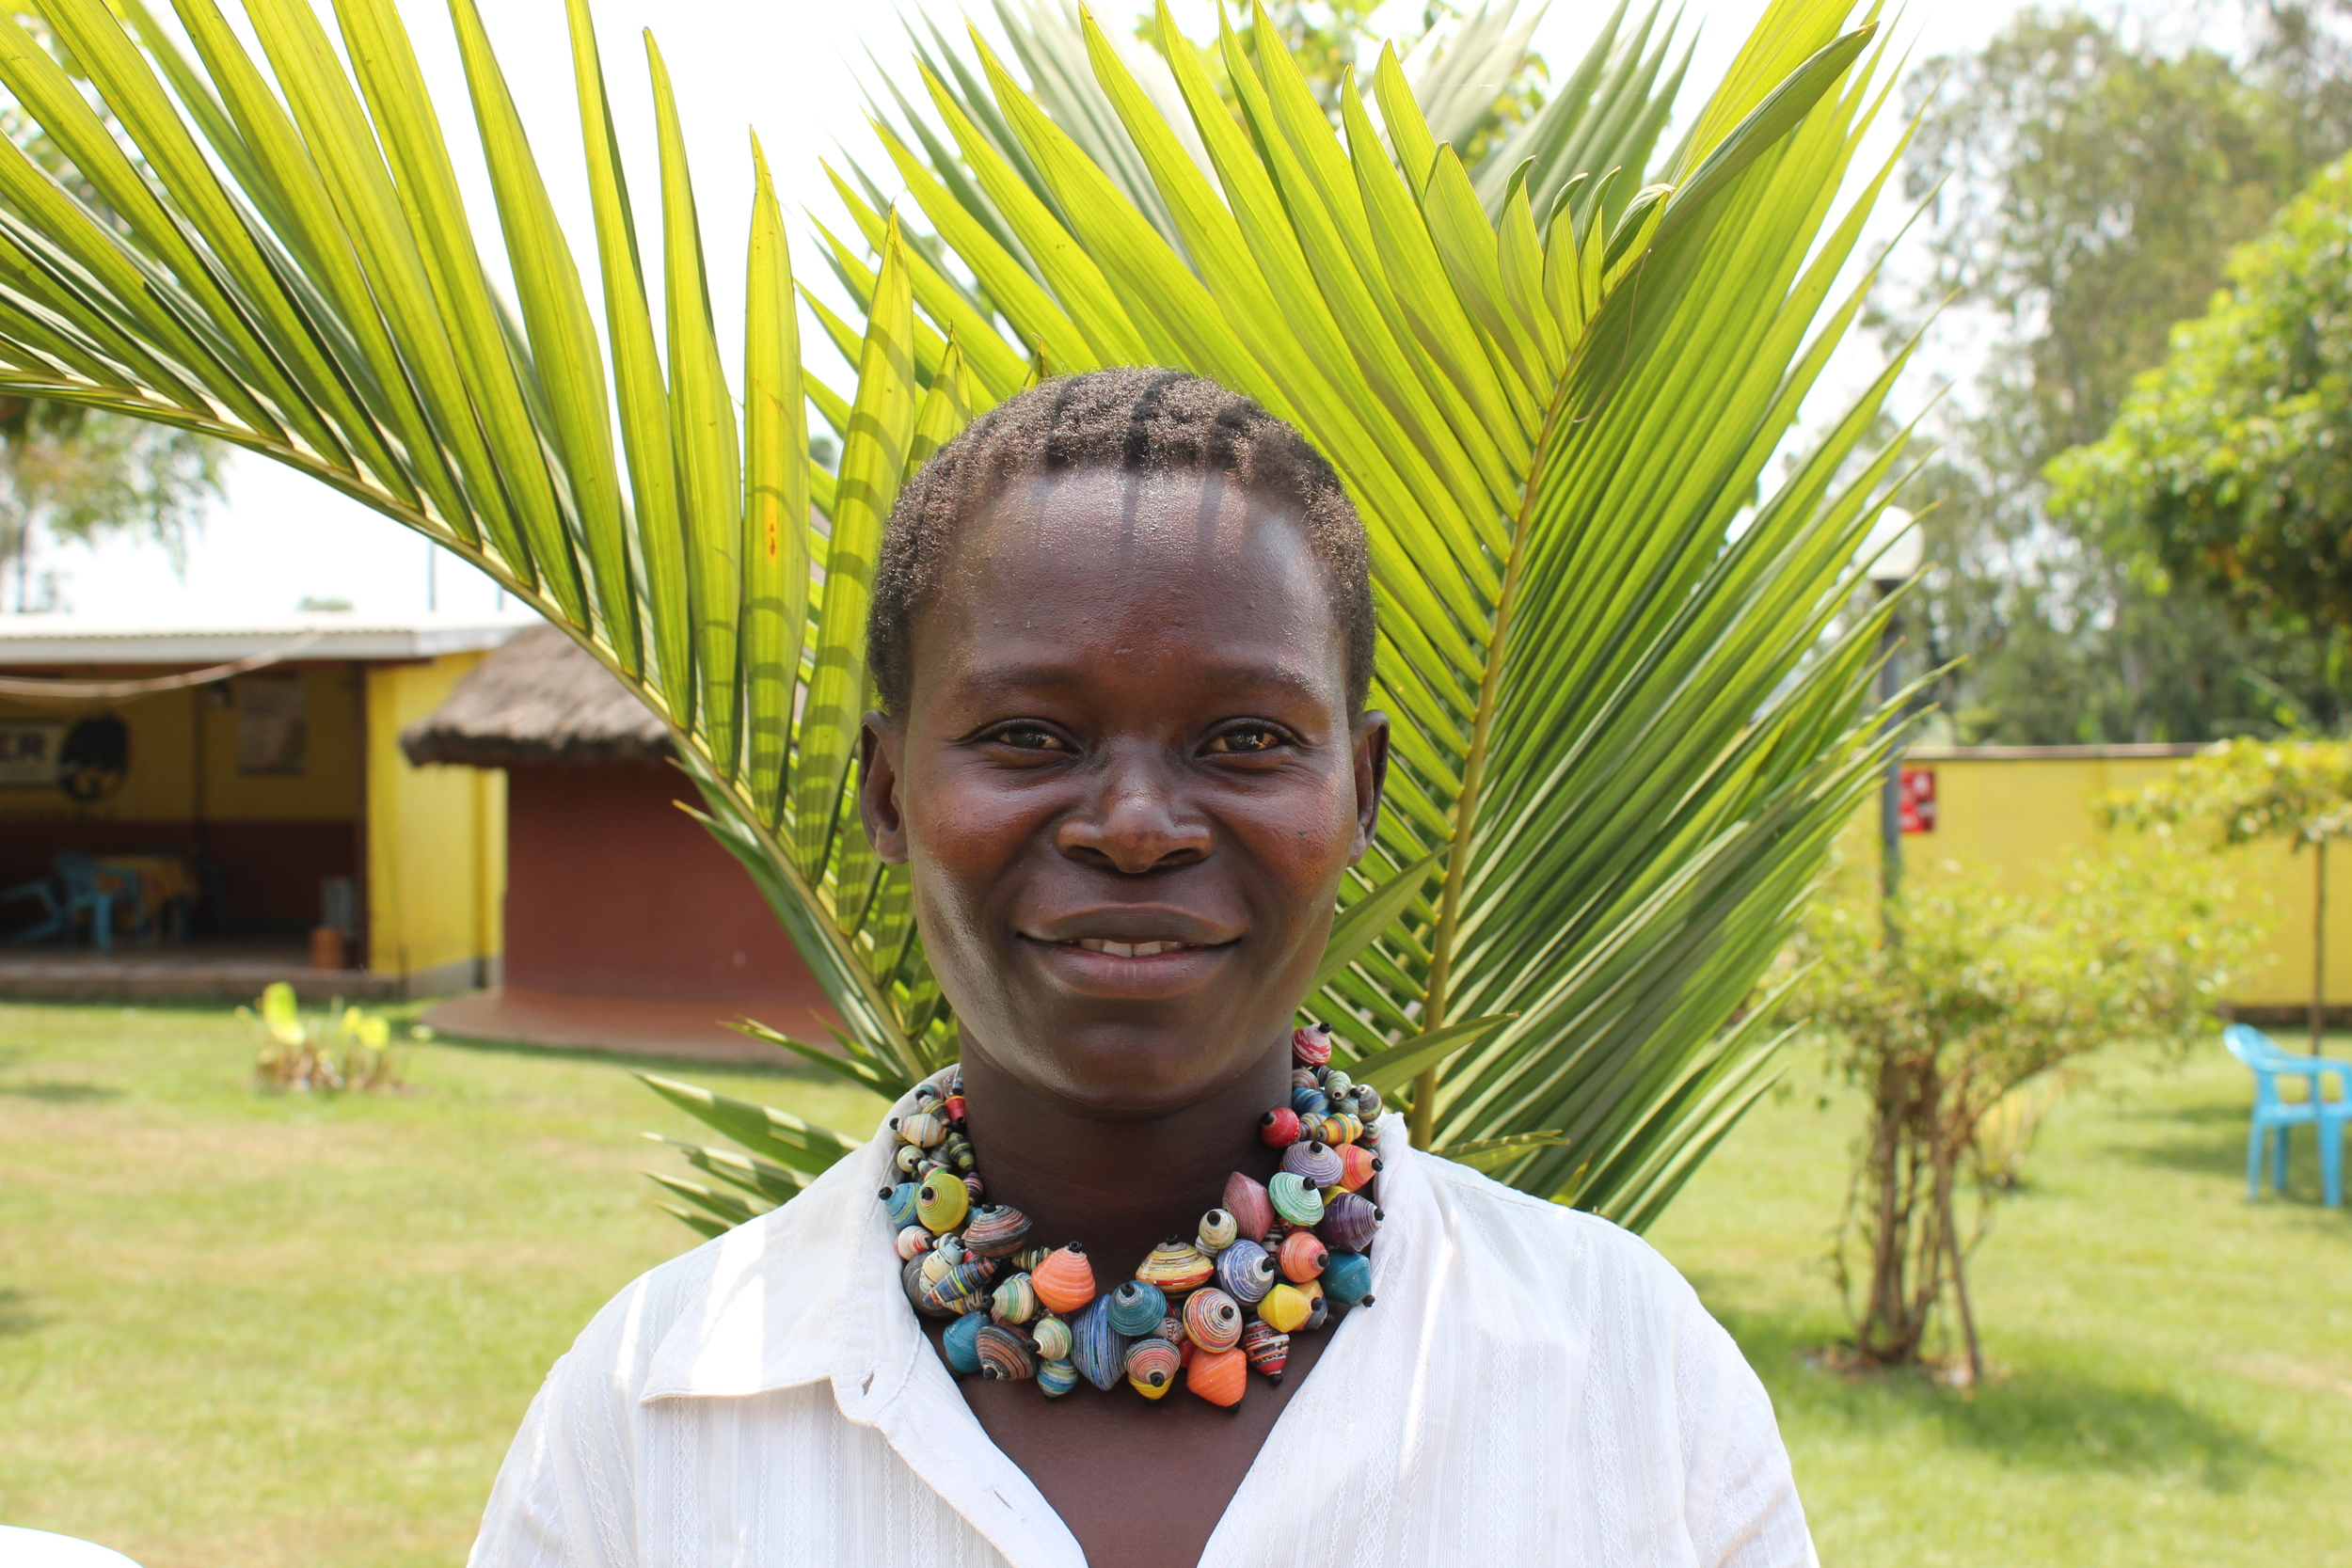 Laker Margret is 32 years old, caring for 7 children. 4 of which are her own, and 3 are under her care. Margret spends her days farming and making paper beads. Beading has allowed Margret to feed her children and buy the necessary scholastic requirements to send them to school. She hopes to one day be self employed through selling crops in the market. She wishes for her children to continue studying well to achieve a better future.    Children:  Wokorach Innocent (16 years old), Lagen Winnie (13 years old ), Oyella Claudia (8 years old), Achayo Beyonce (2 years old), Atim Rema Sharon (16 years old), Kolo Jimmy (13 years old), Banya Charles (11 years old)